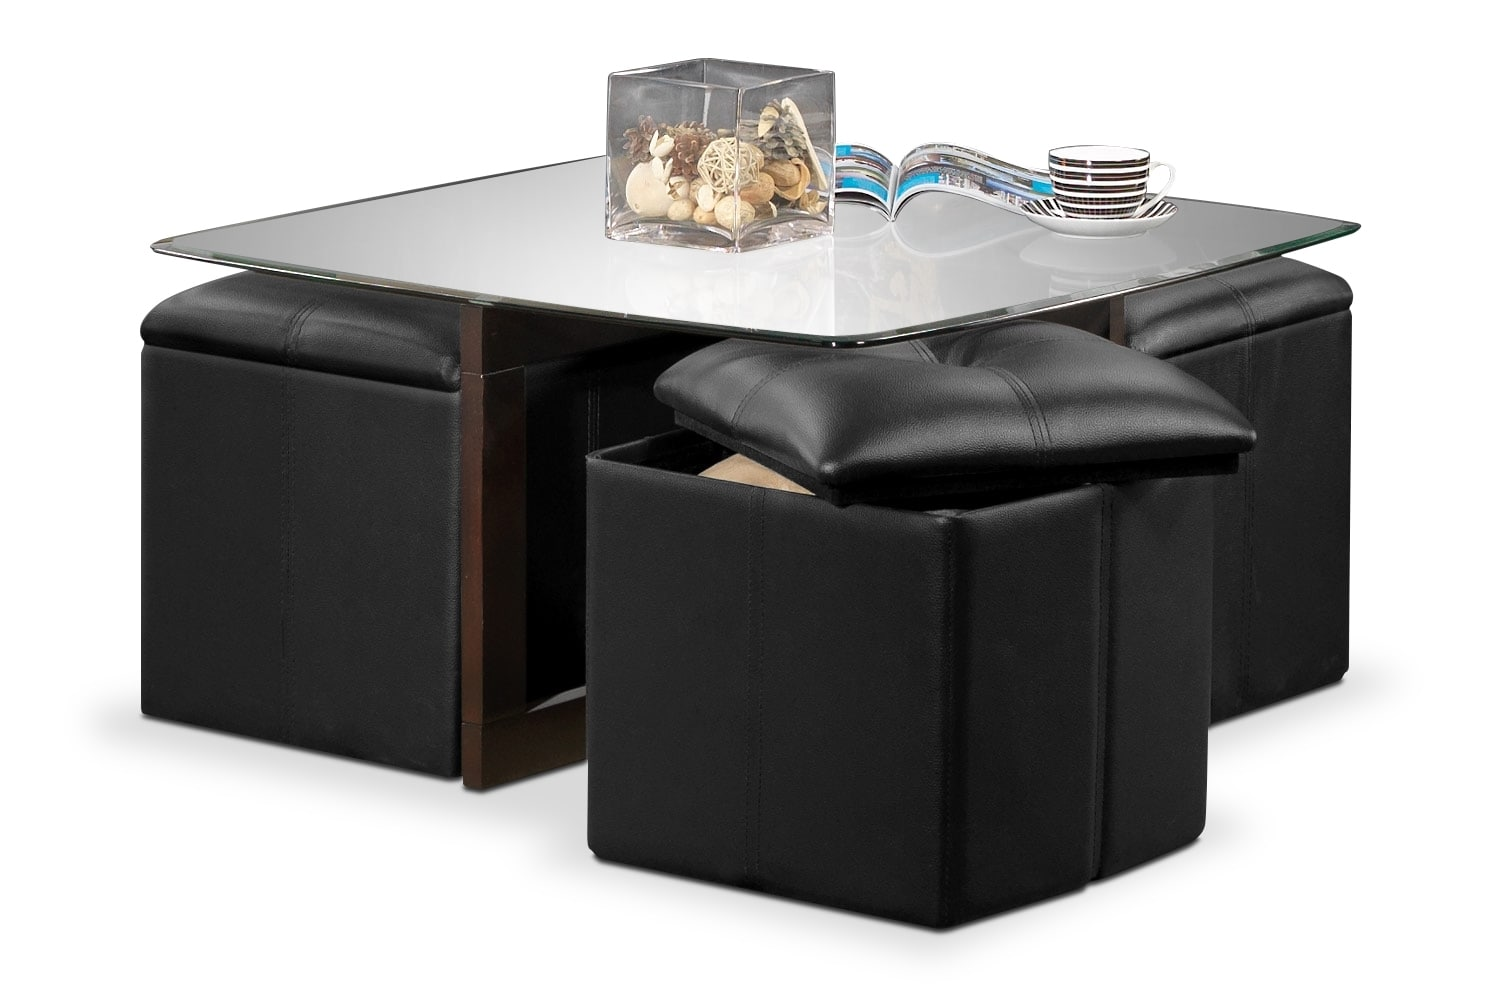 Neera coffee table w four ottomans black leon 39 s Black ottoman coffee table